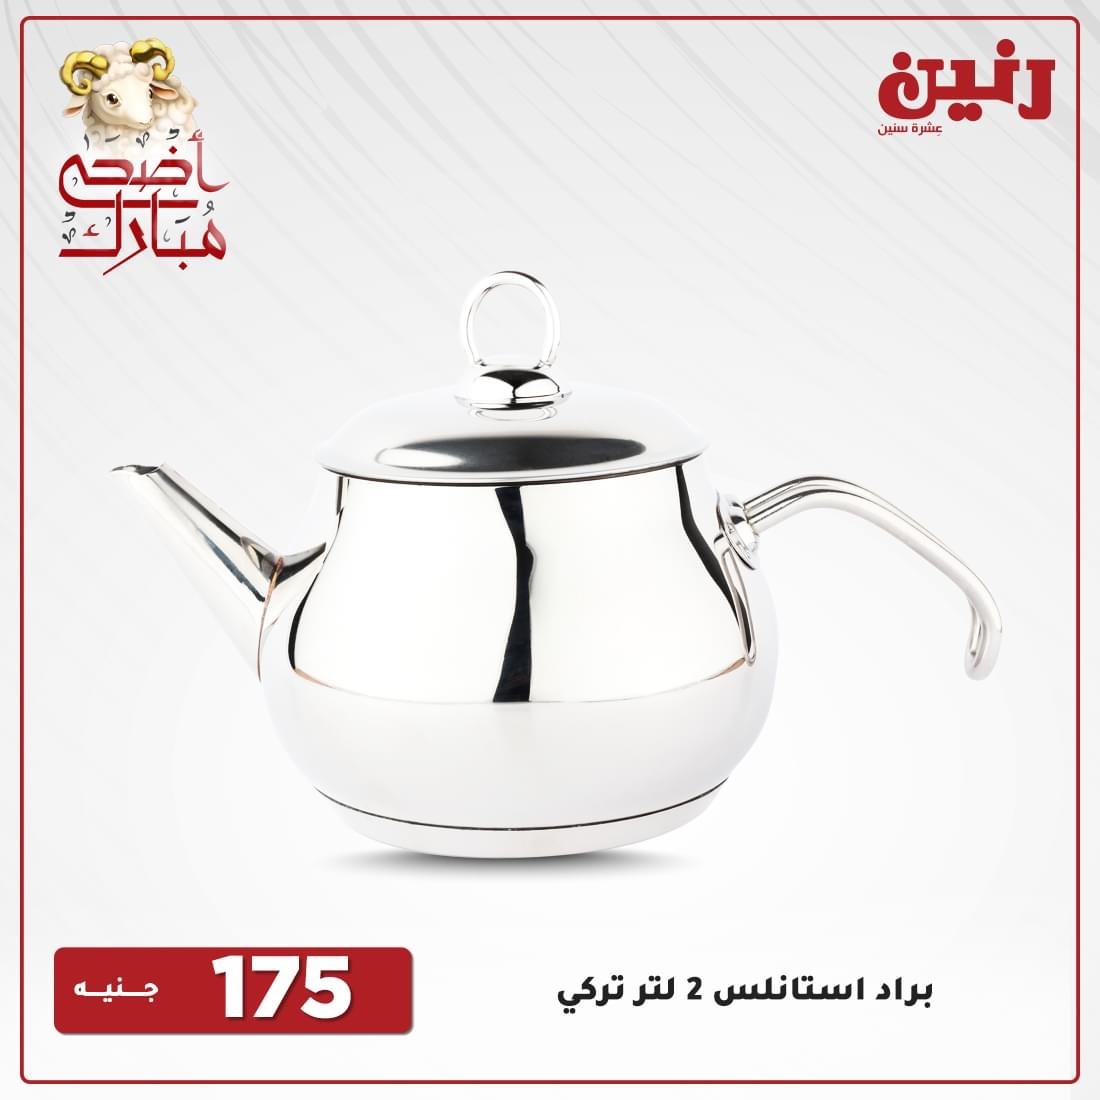 Raneen offers today for appliances and household appliances from July 22 to 24, 2021 25